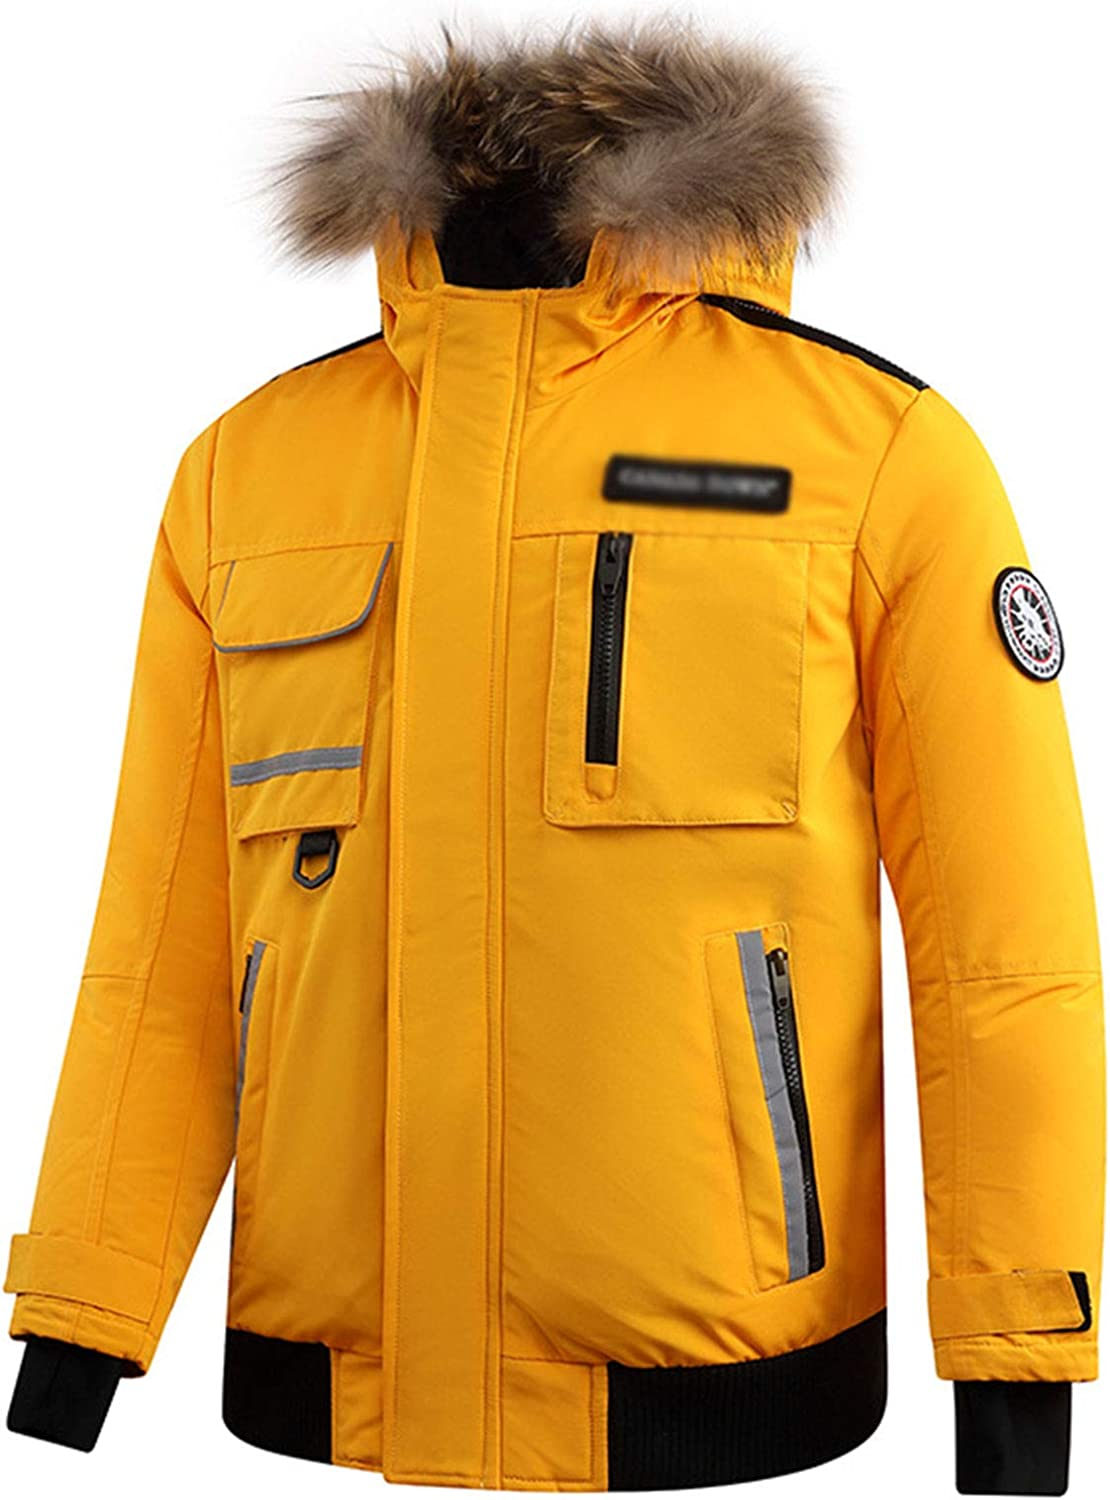 DUTUI Men's Winter Down Jacket, 80% White Duck Down Short Thick Down Jacket Casual Workwear Men's and Women's Warm Down Jacket,Yellow,4XL